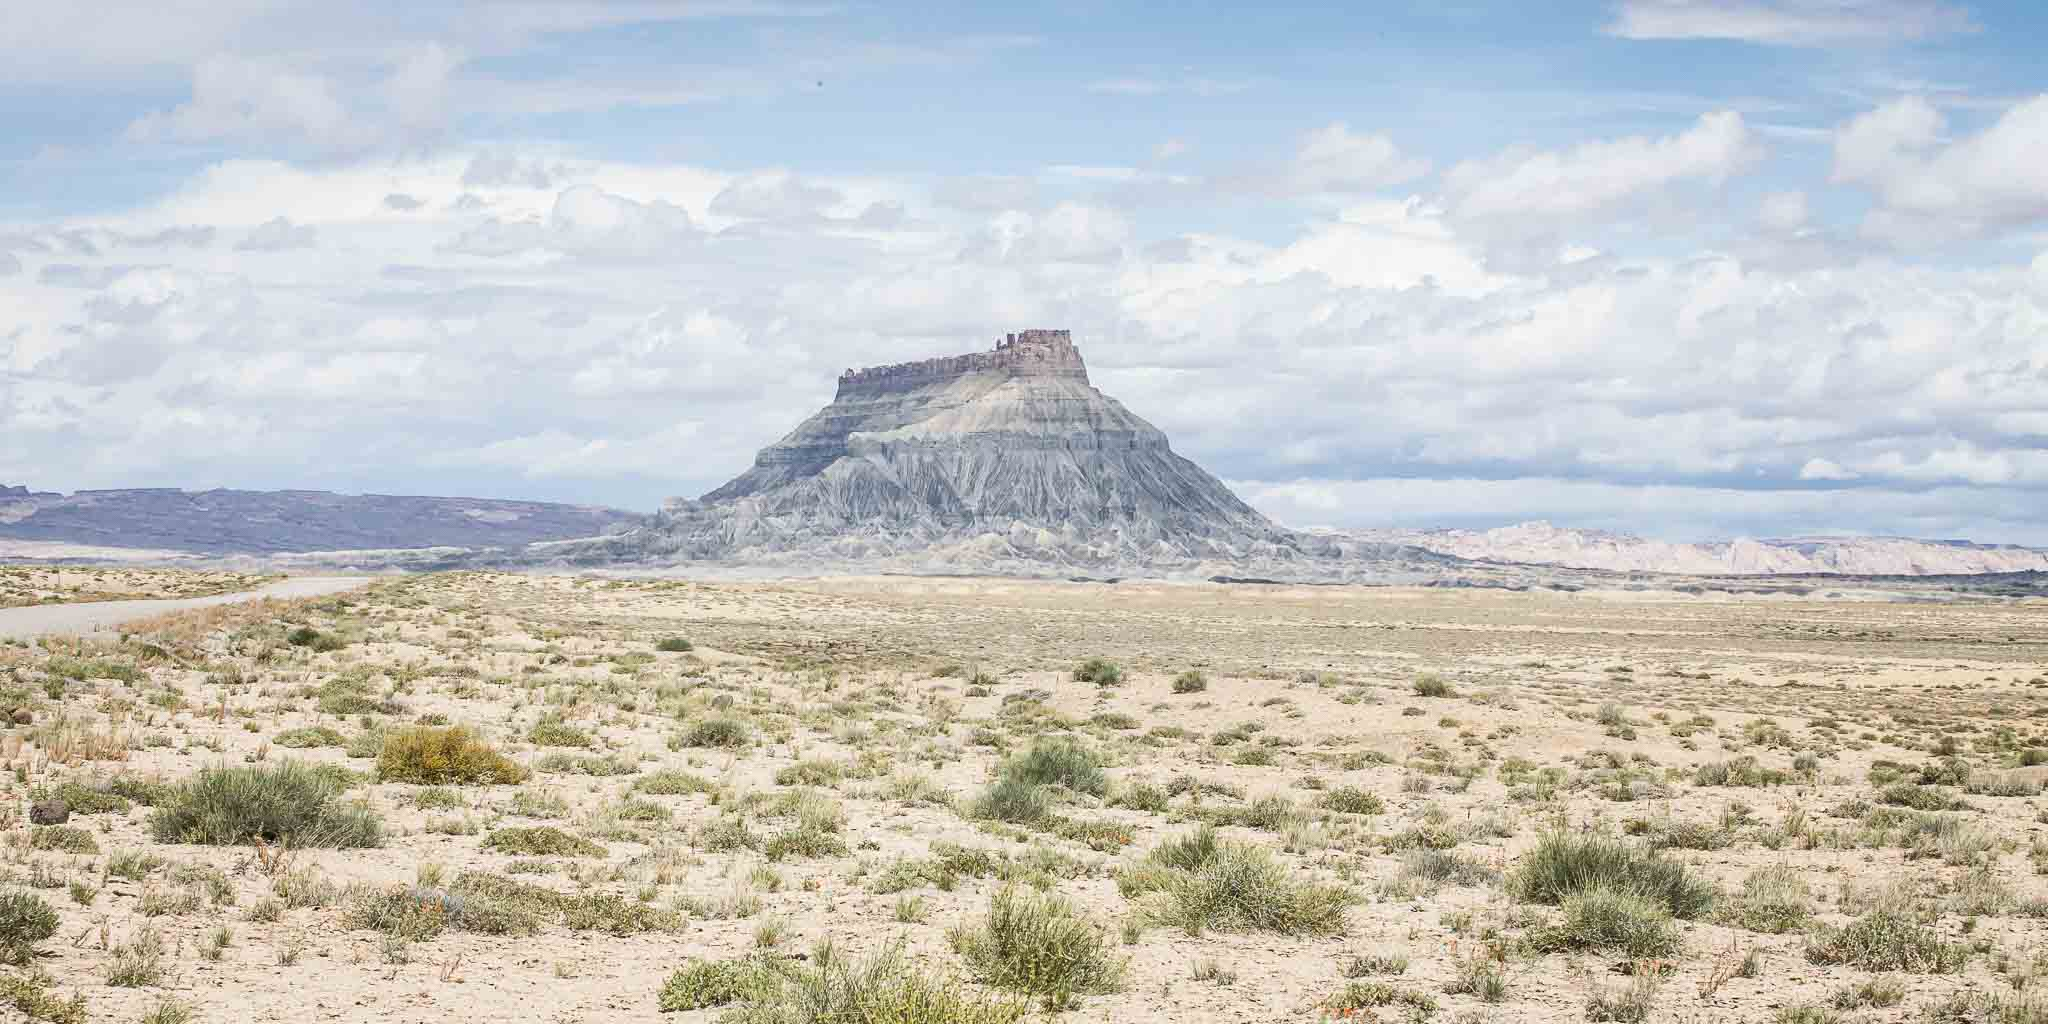 Factory Butte, Caineville Badlands, Caineville UT, May 6, 2015